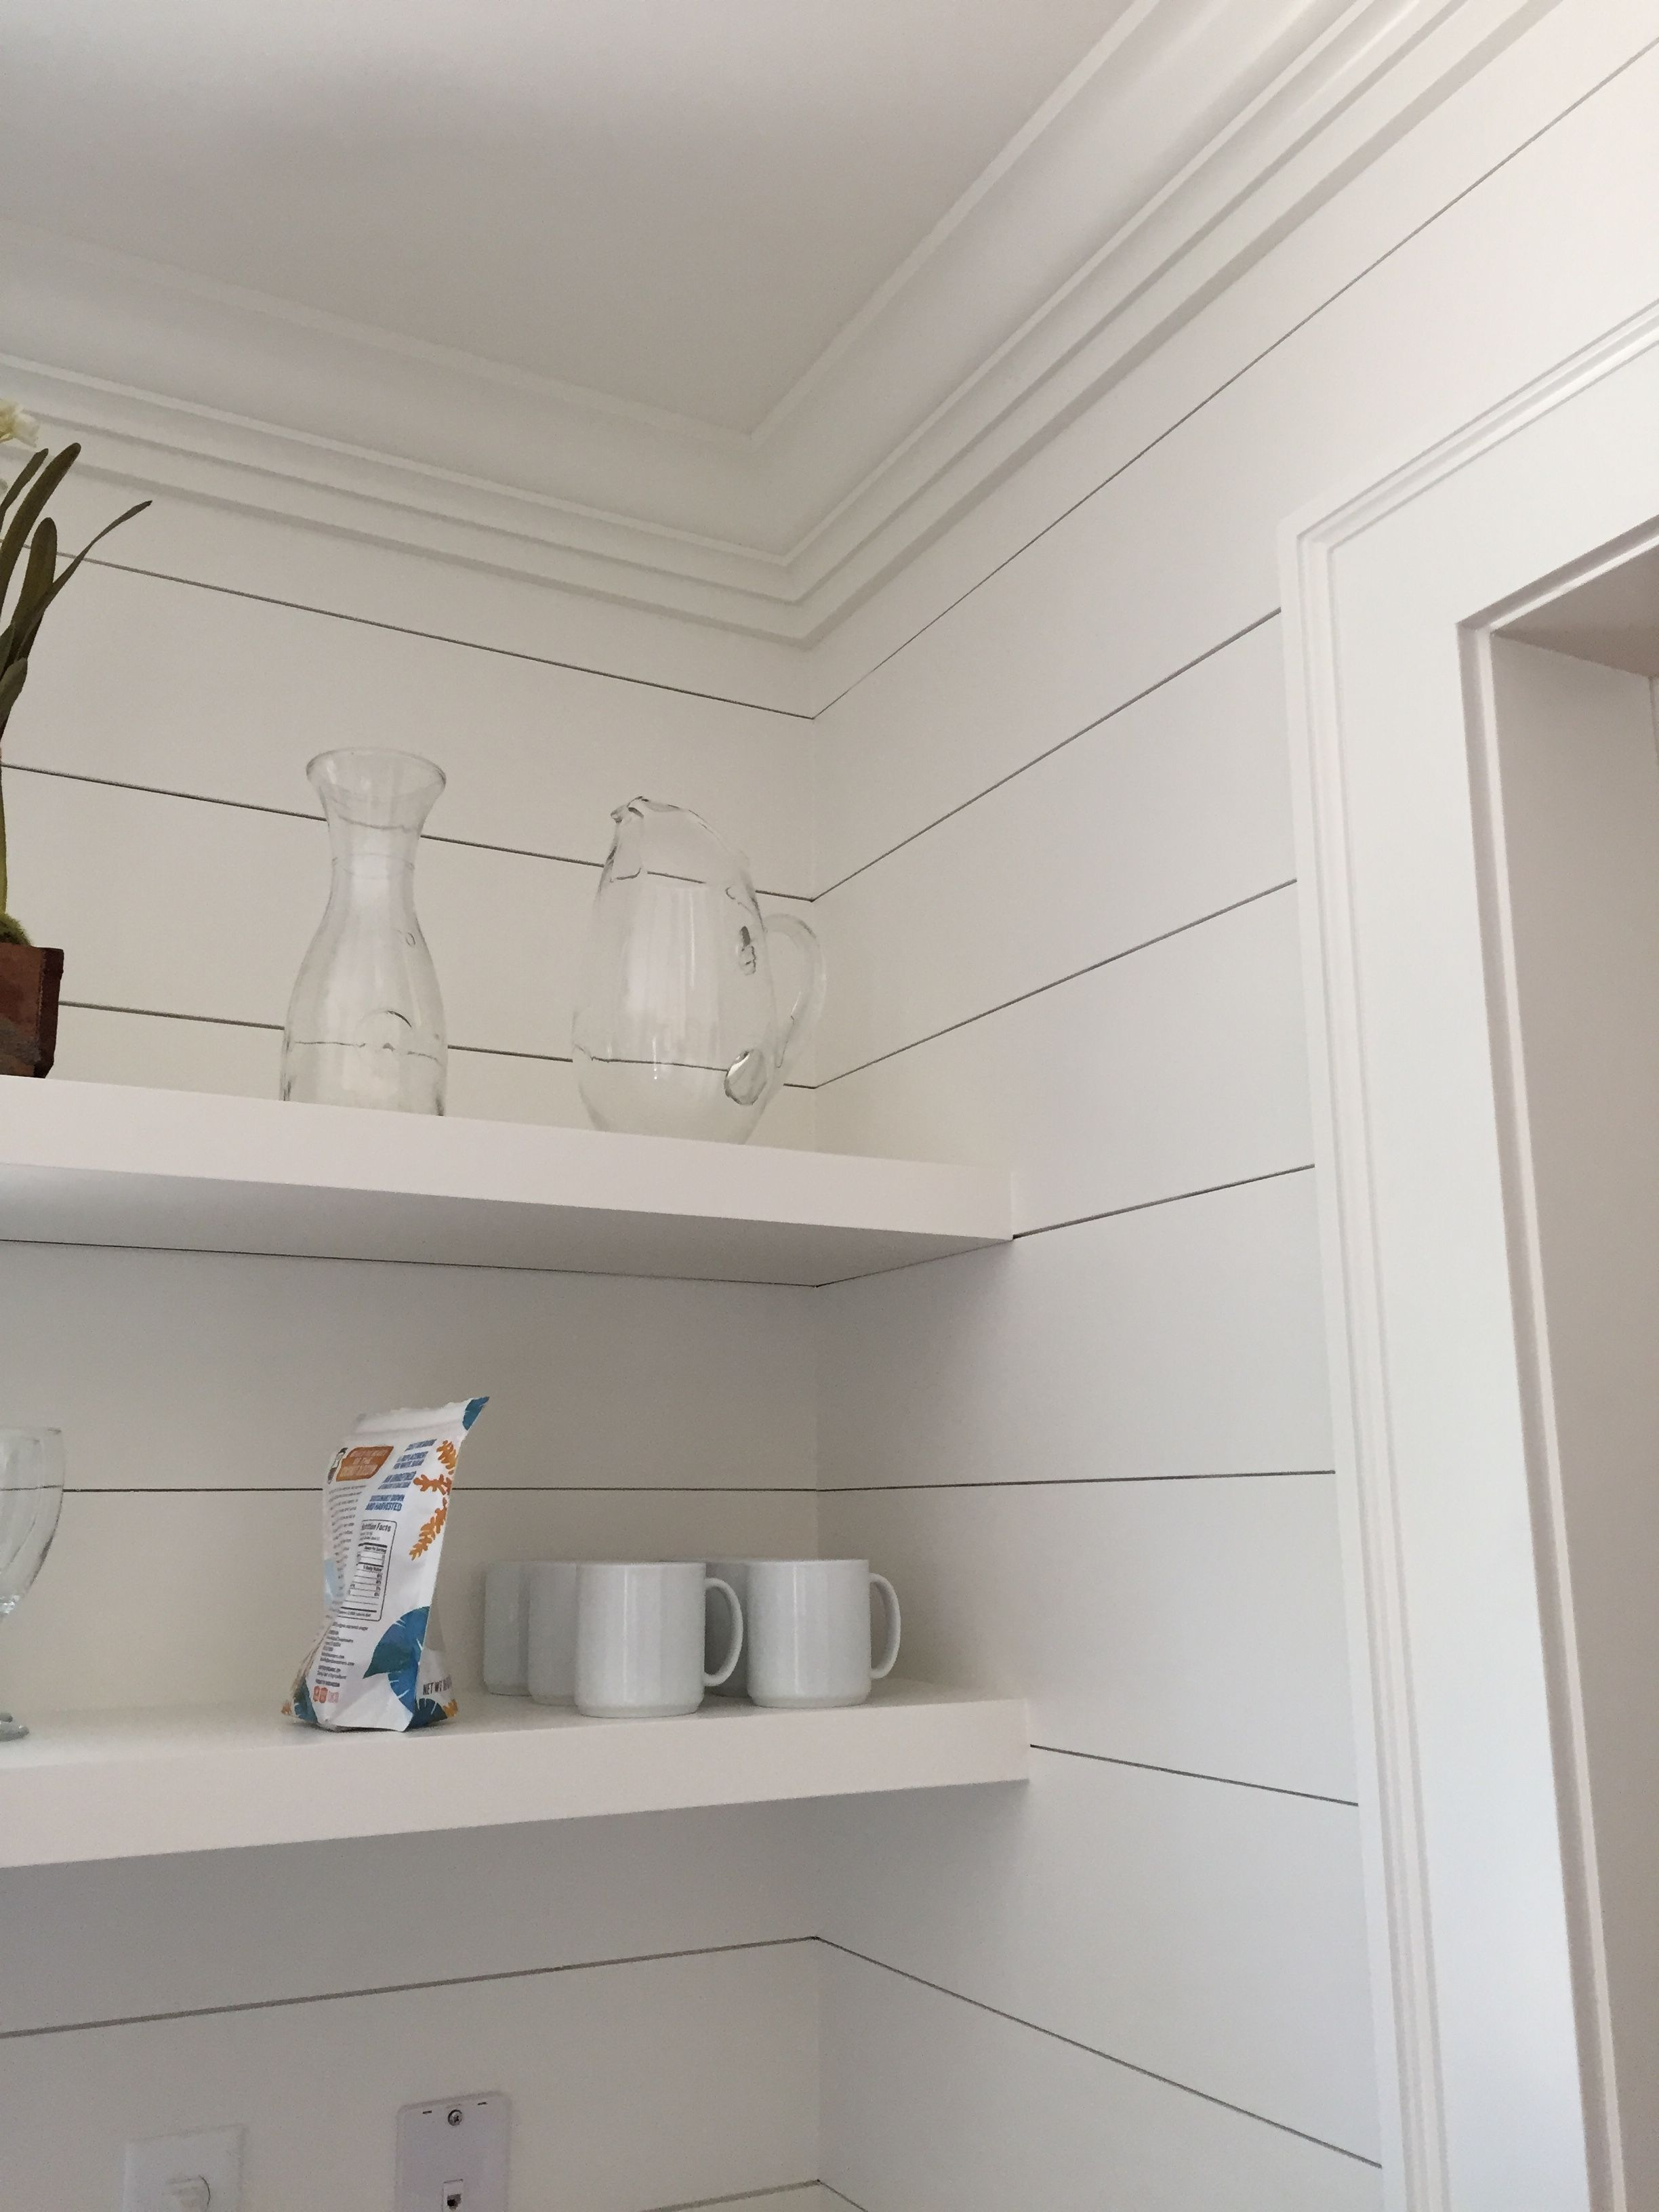 Sherwin Williams Alabaster 7008 matte walls eggshell finish little